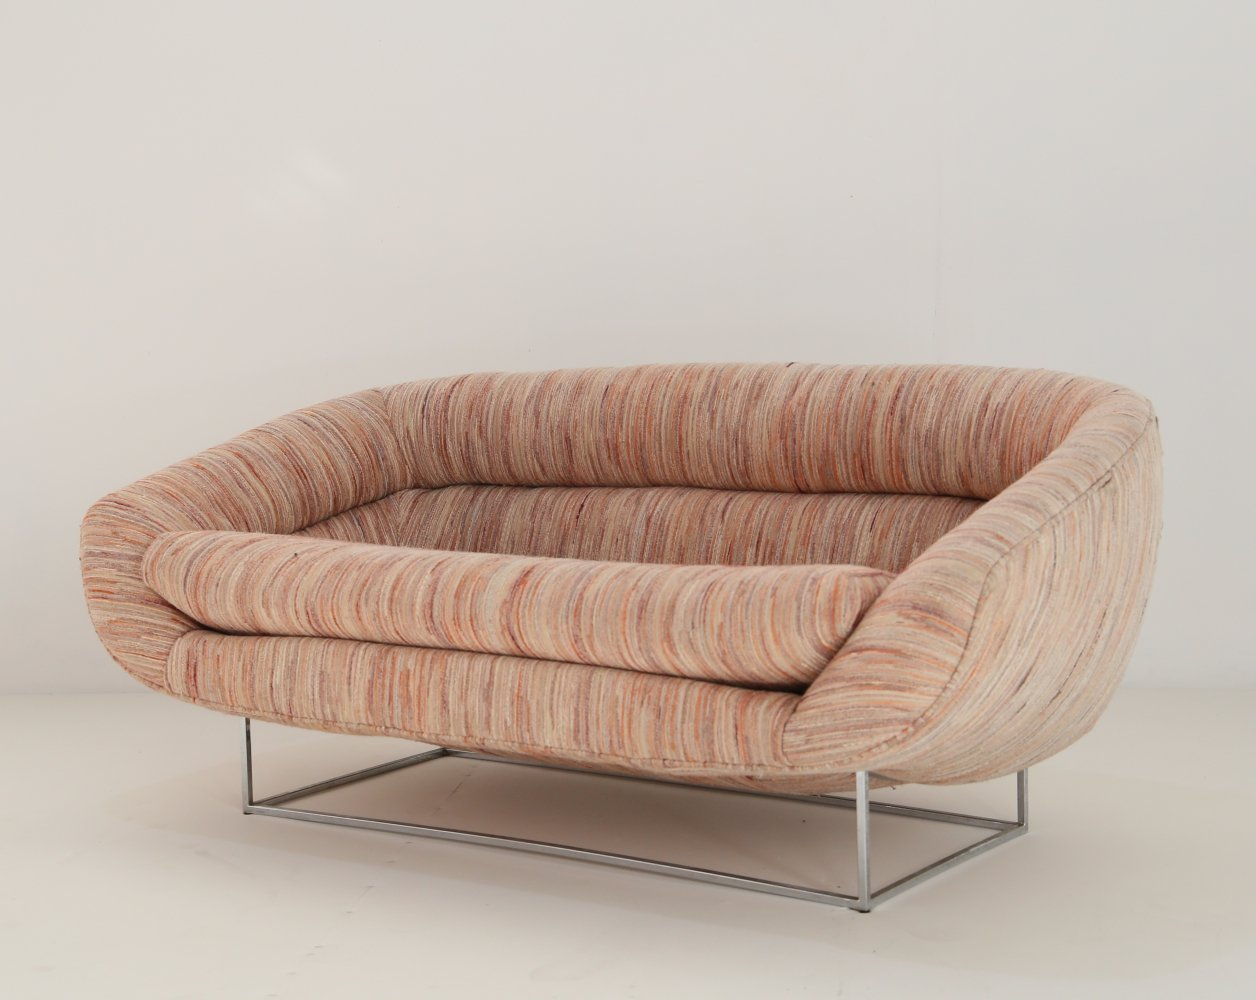 Two-seat sofa designed by Milo Baugman, 1970s